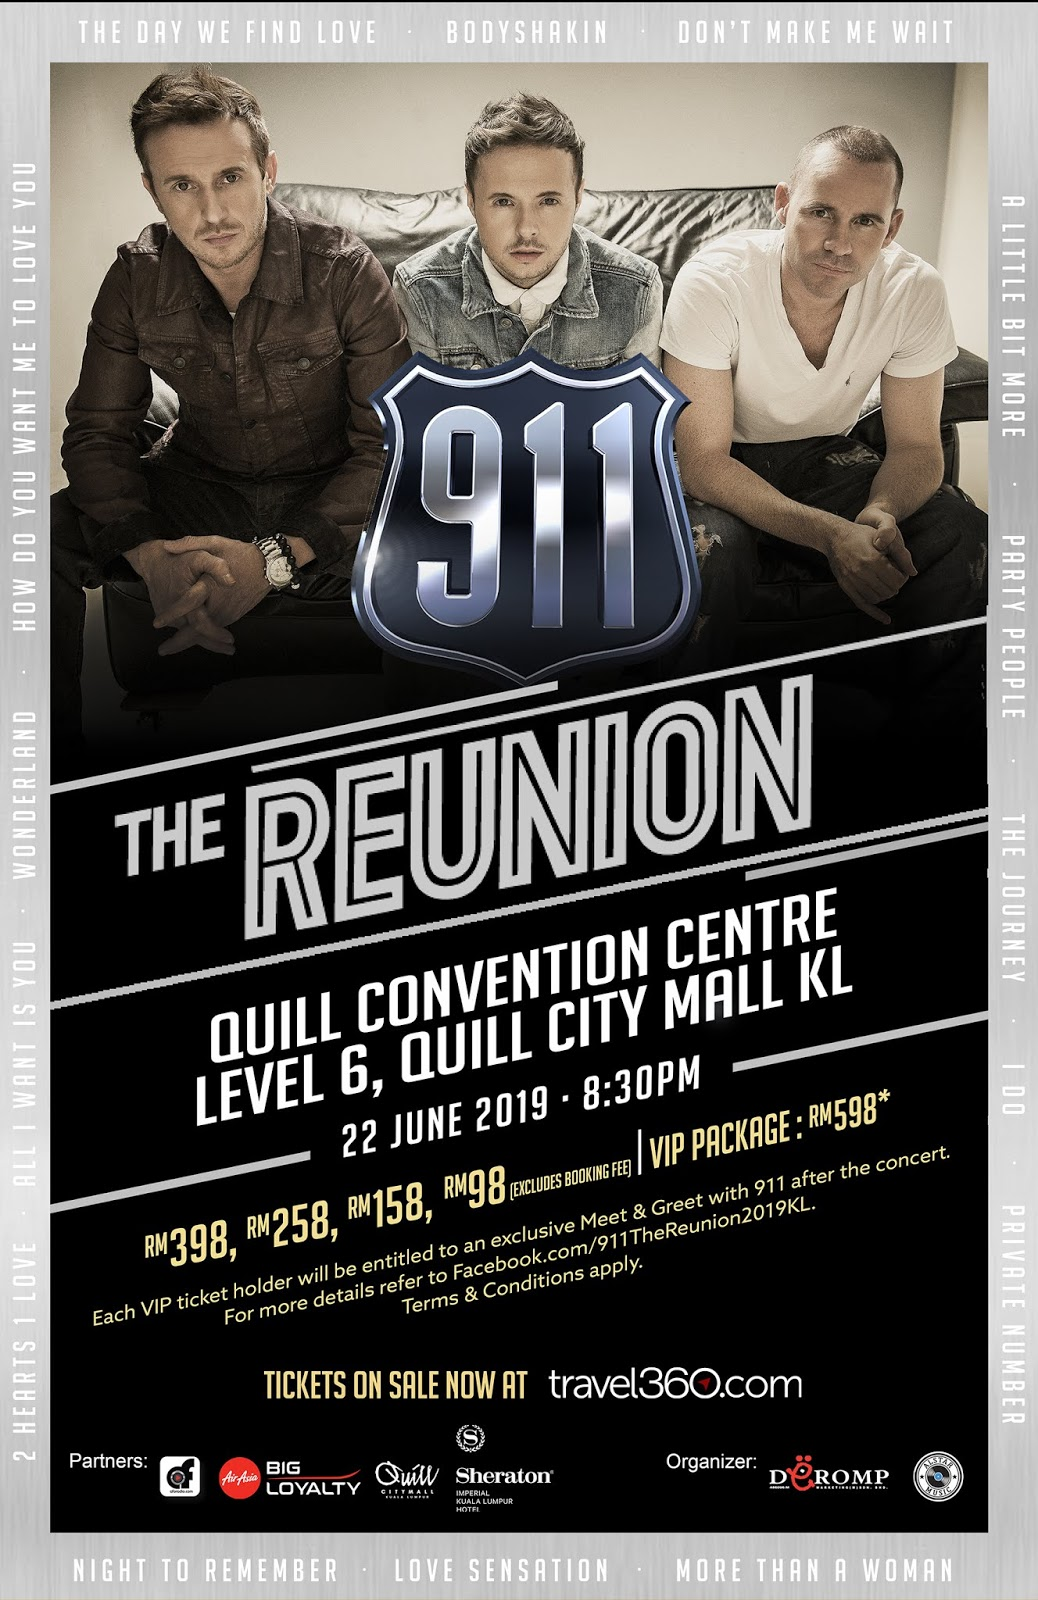 aa0b2a48080 Tickets to the most exciting Reunion party this year with 911, taking place  on 22 June, will be on sale from 10AM on 18 April 2019 onwards.